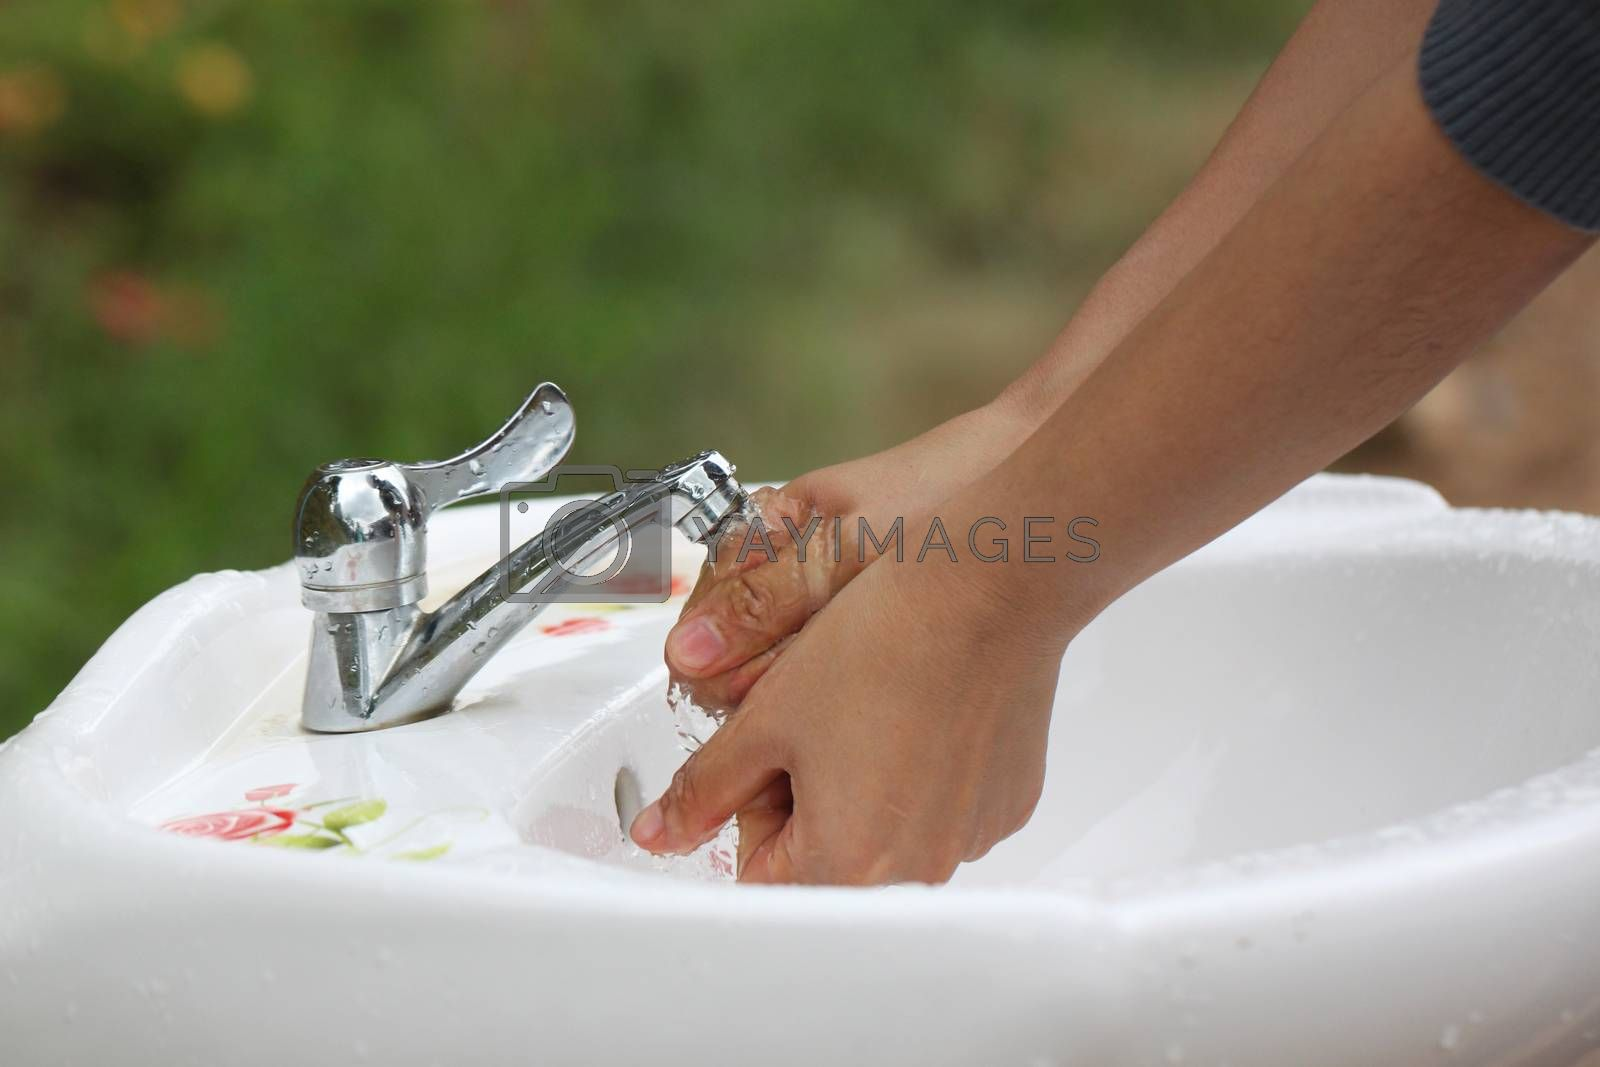 Women's hands are washed. by PiyaPhoto